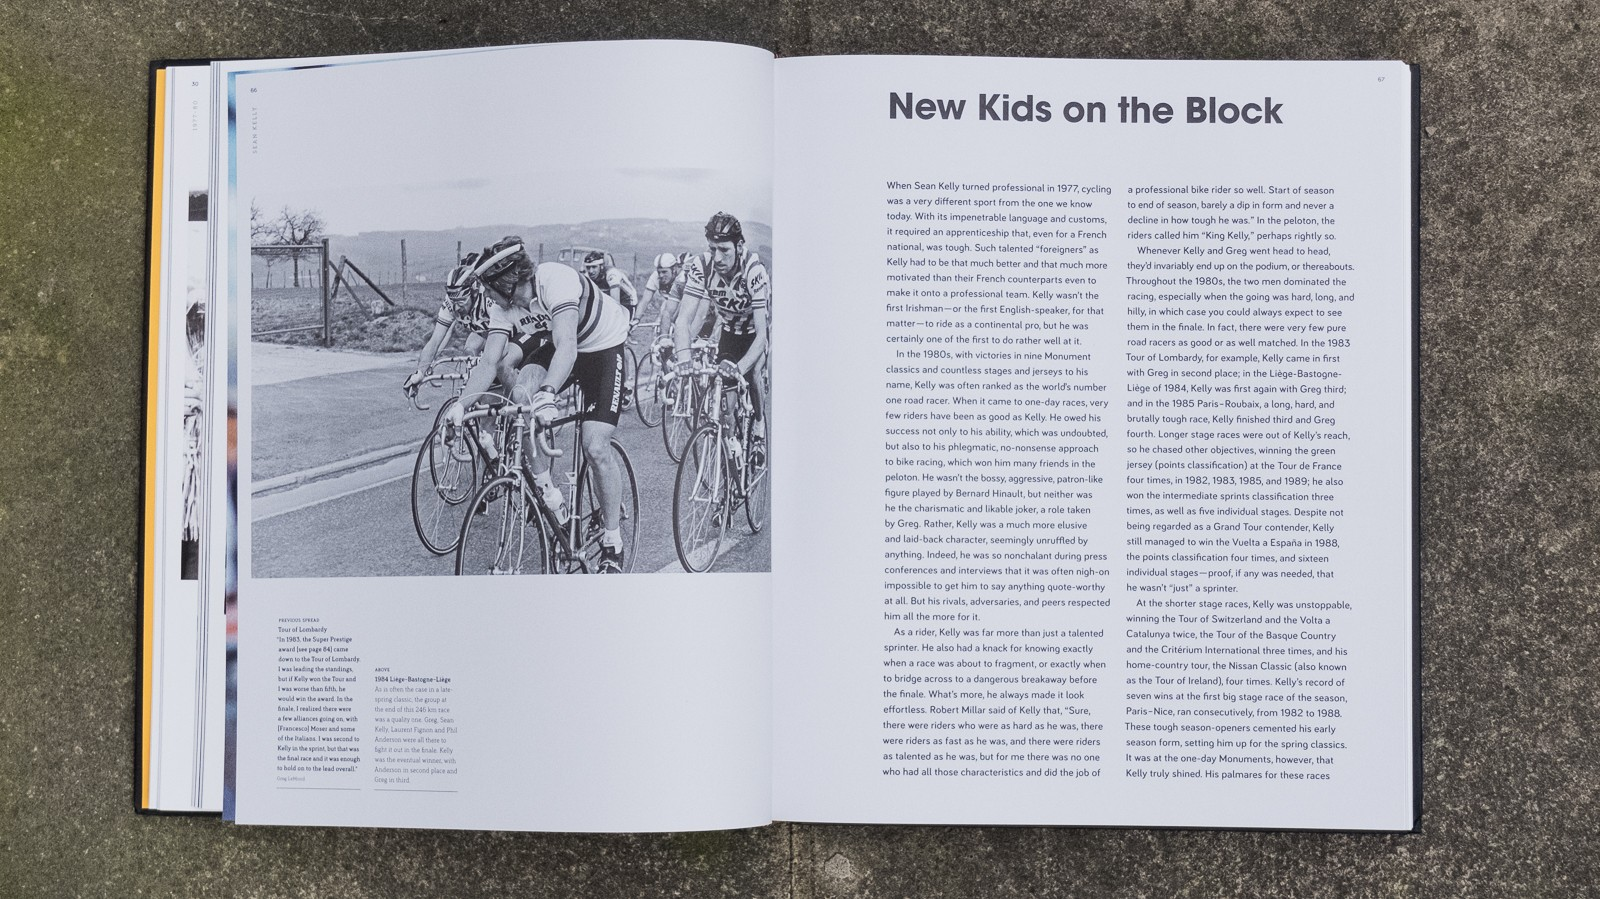 The extensive photos are accompanied by extensive interviews with LeMond and others